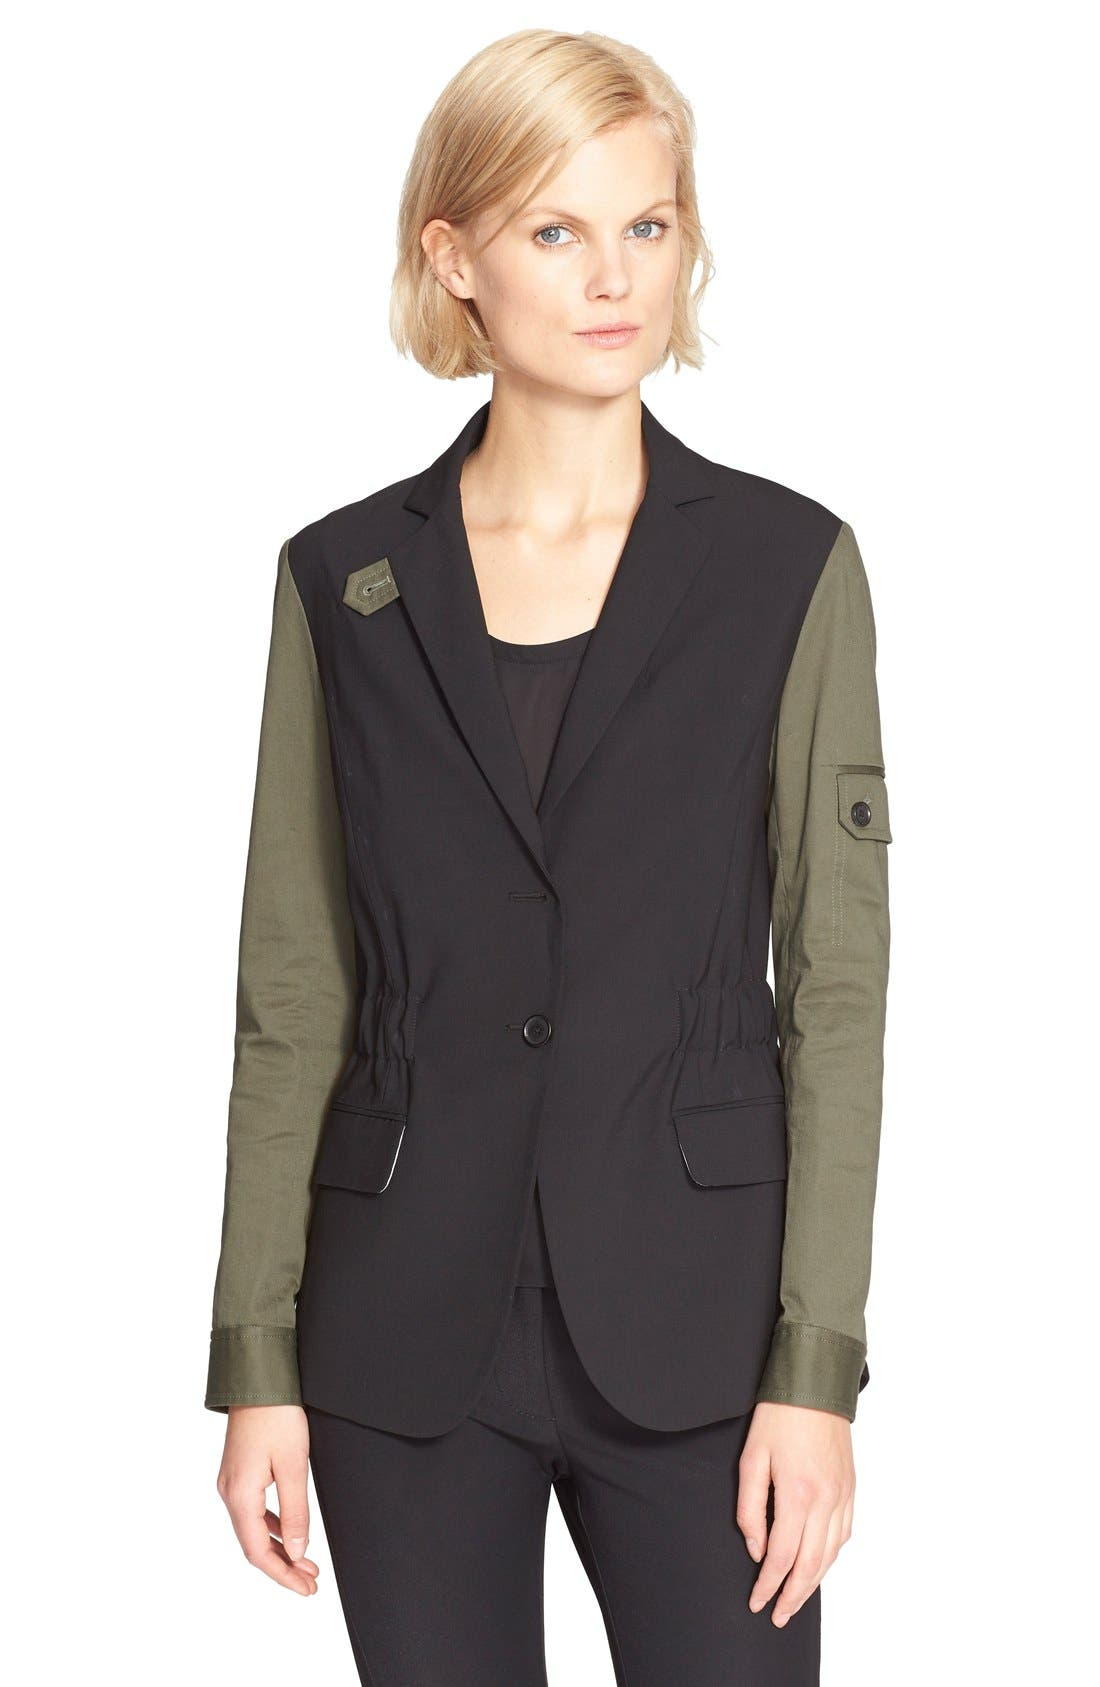 Alternate Image 1 Selected - Veronica Beard Army Jacket with Removable Hooded Dickey